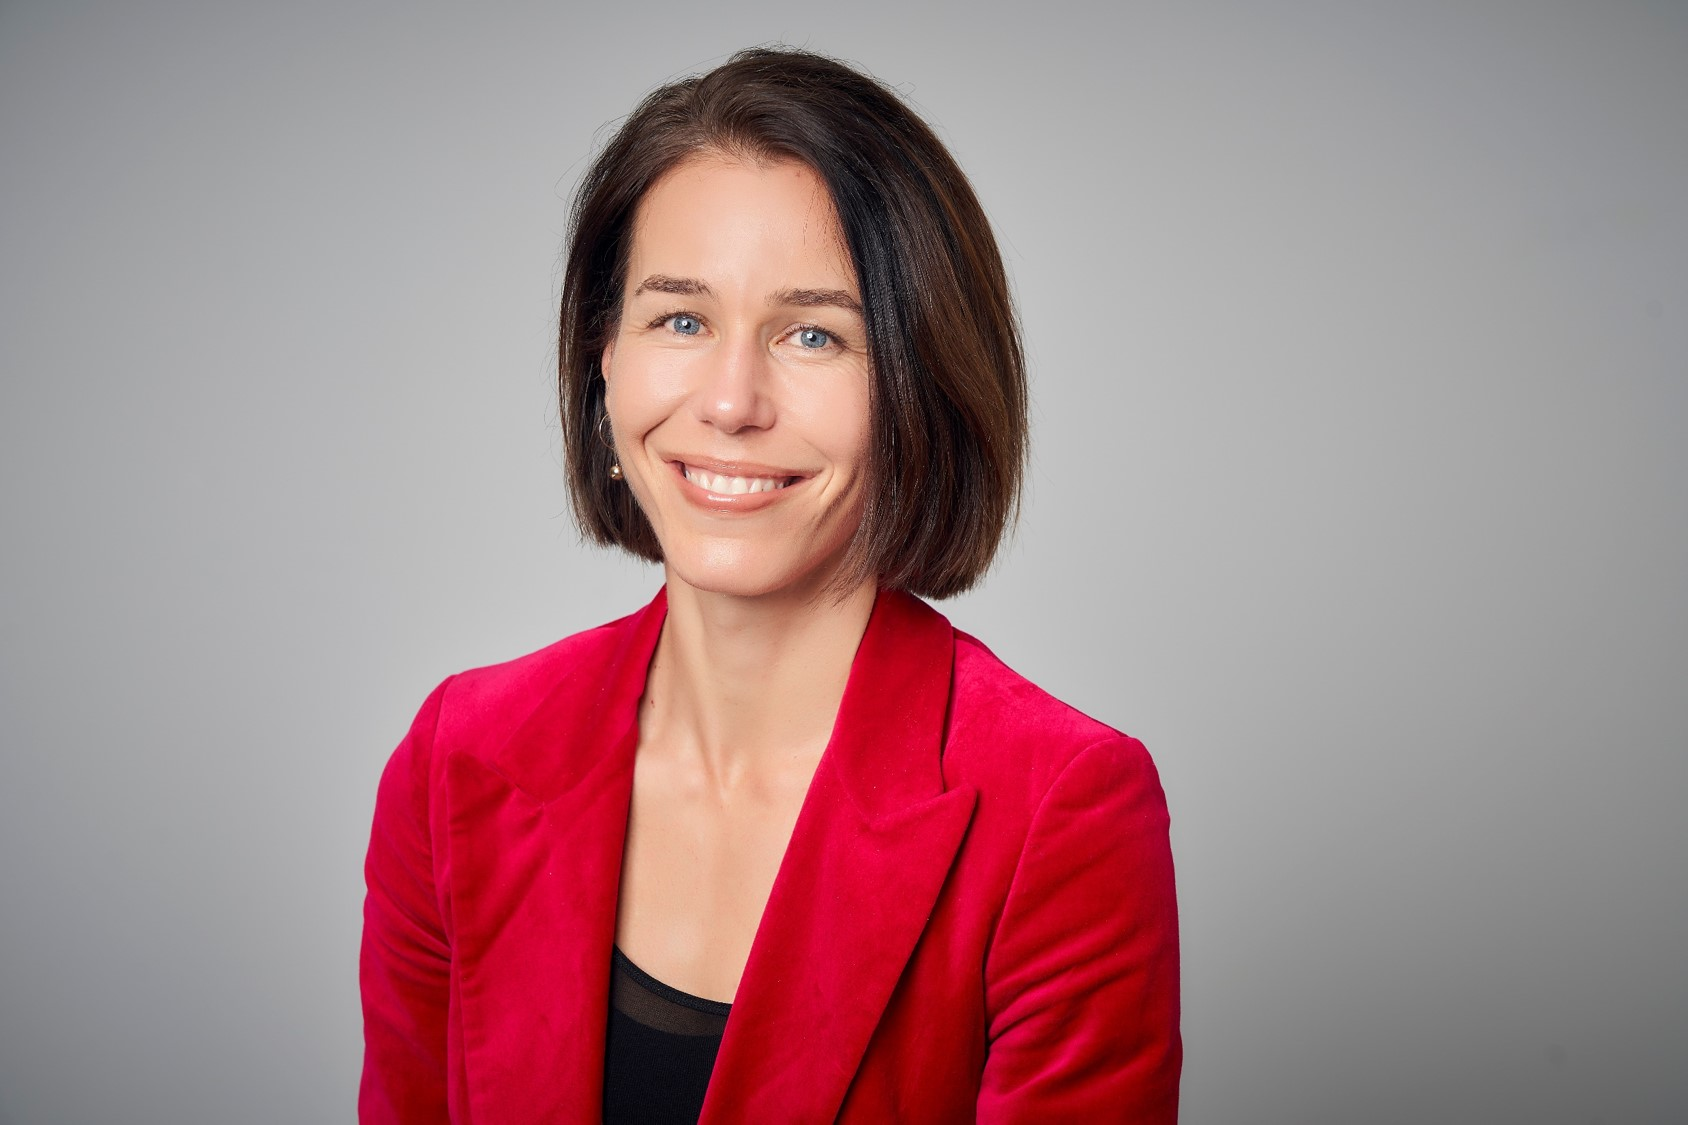 Get to know Anna: Q&A with our new CEO